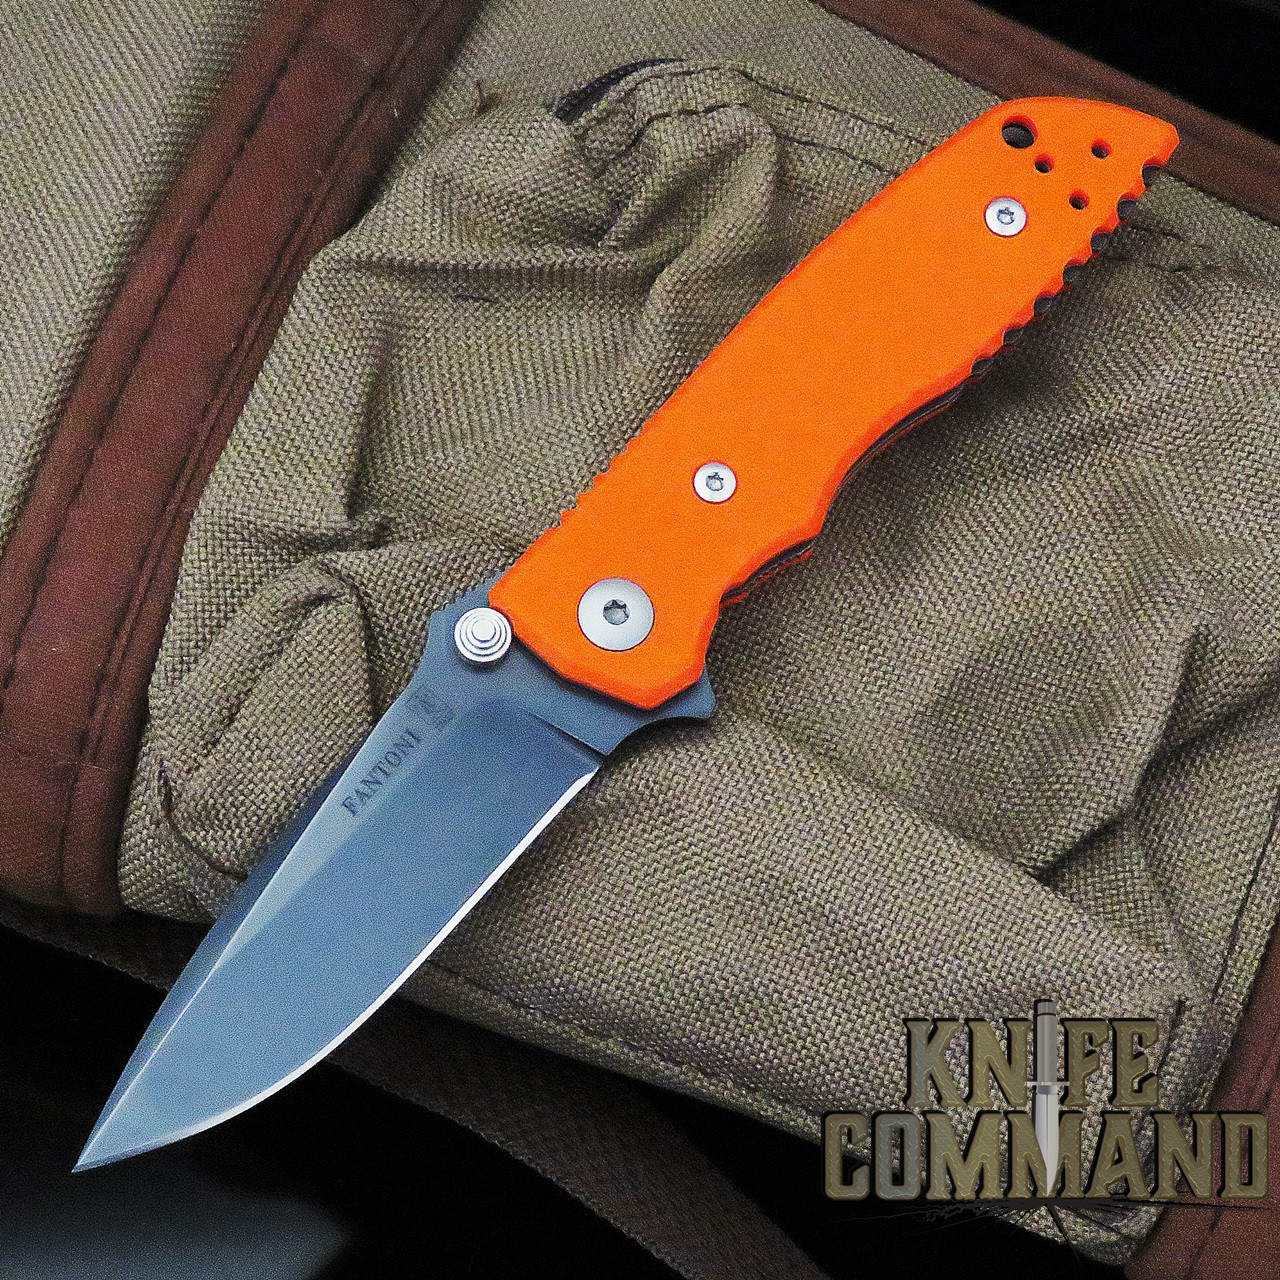 Fantoni HB 03 William Harsey Combat Folder Tactical Knife Blaze Orange S35VN Black PVD